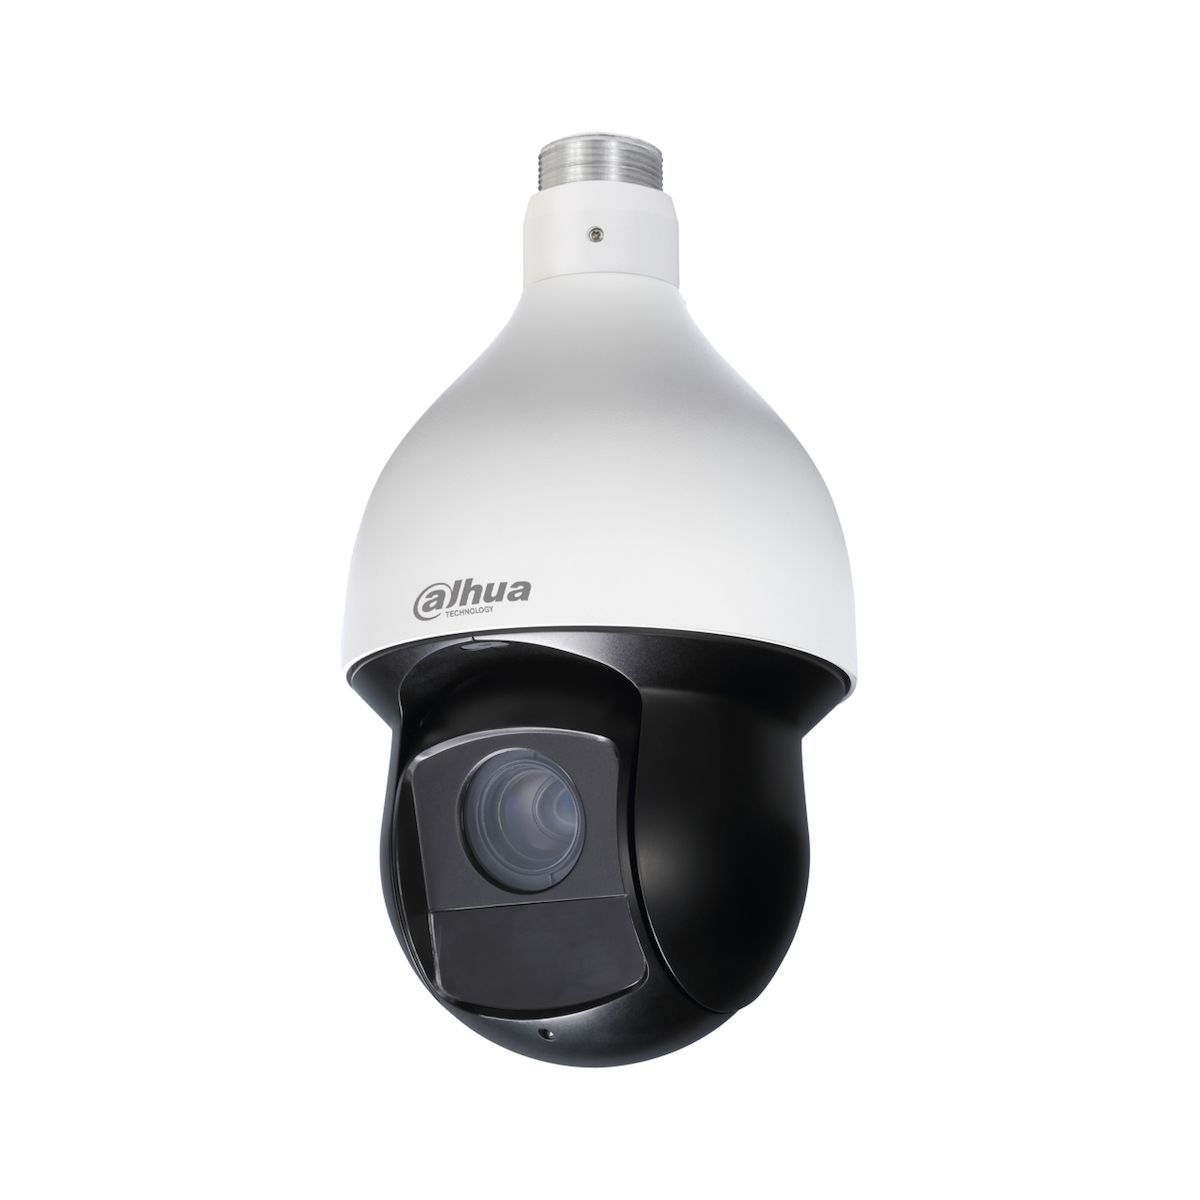 Dahua DH-SD59430U-HNI 4MP IR PTZ Network Camera